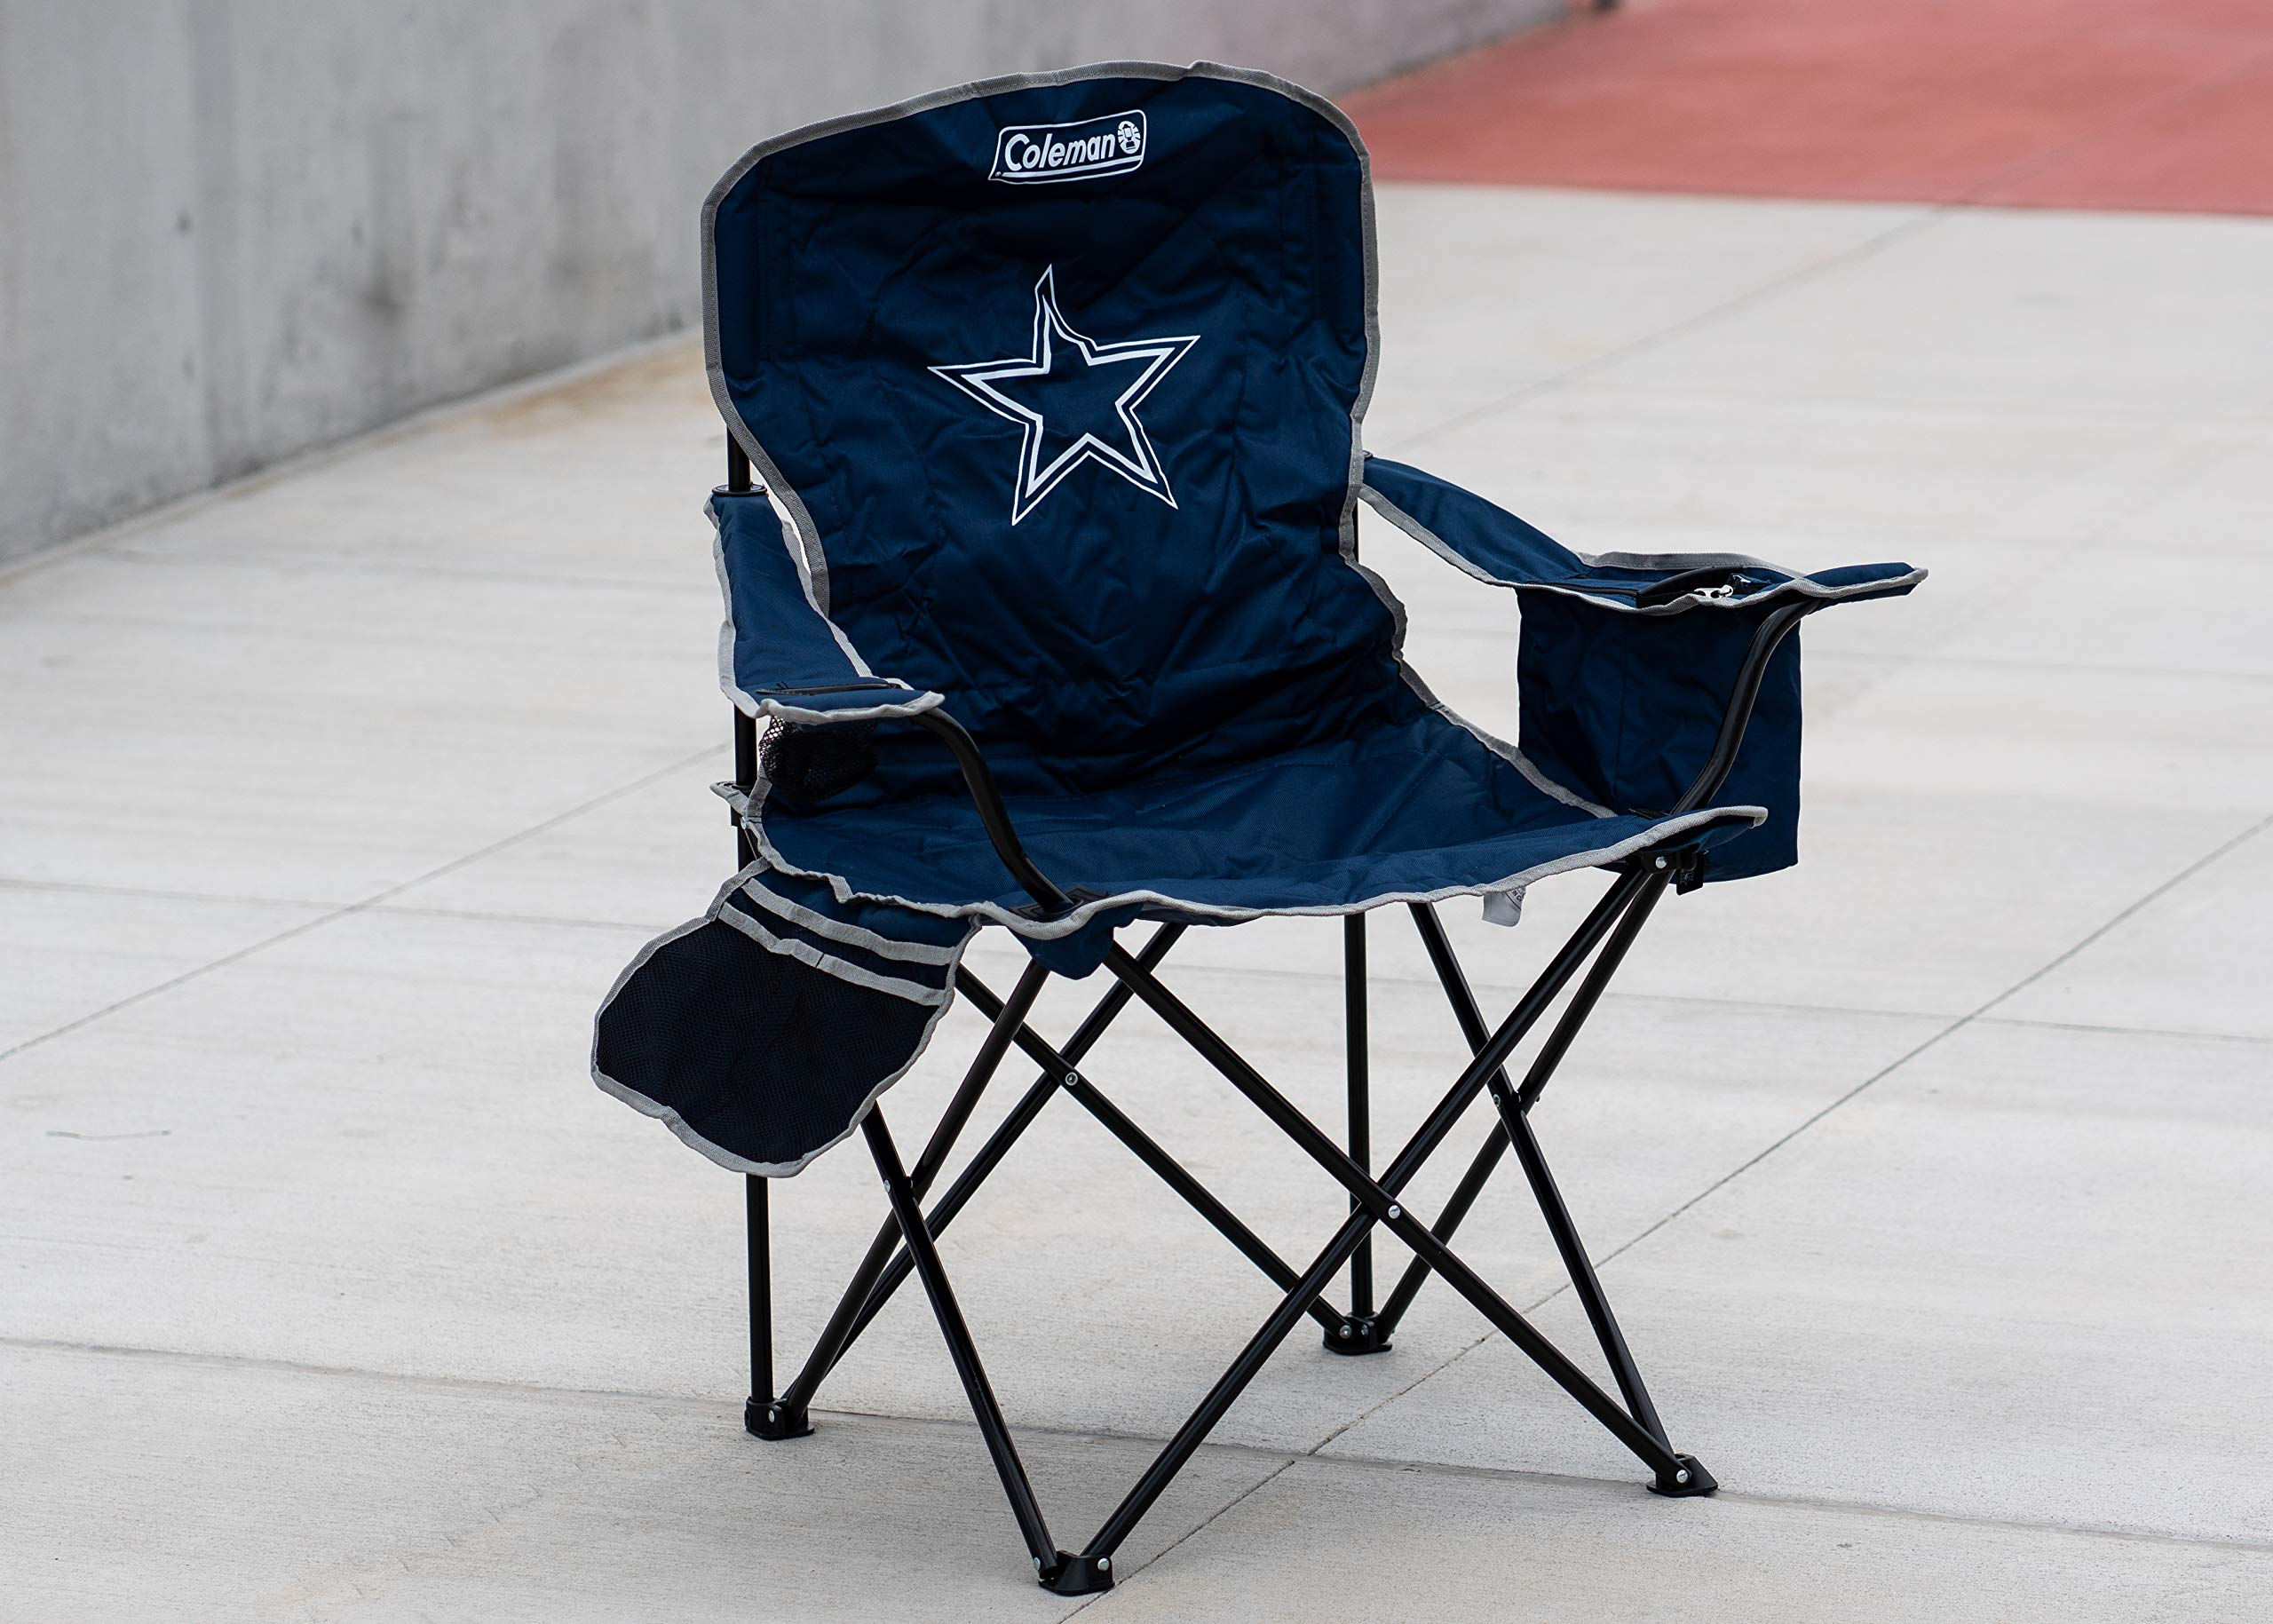 Coleman NFL Cooler Quad Folding Tailgating & Camping Chair with Built in Cooler and Carrying Case, San Francisco 49ers by Coleman